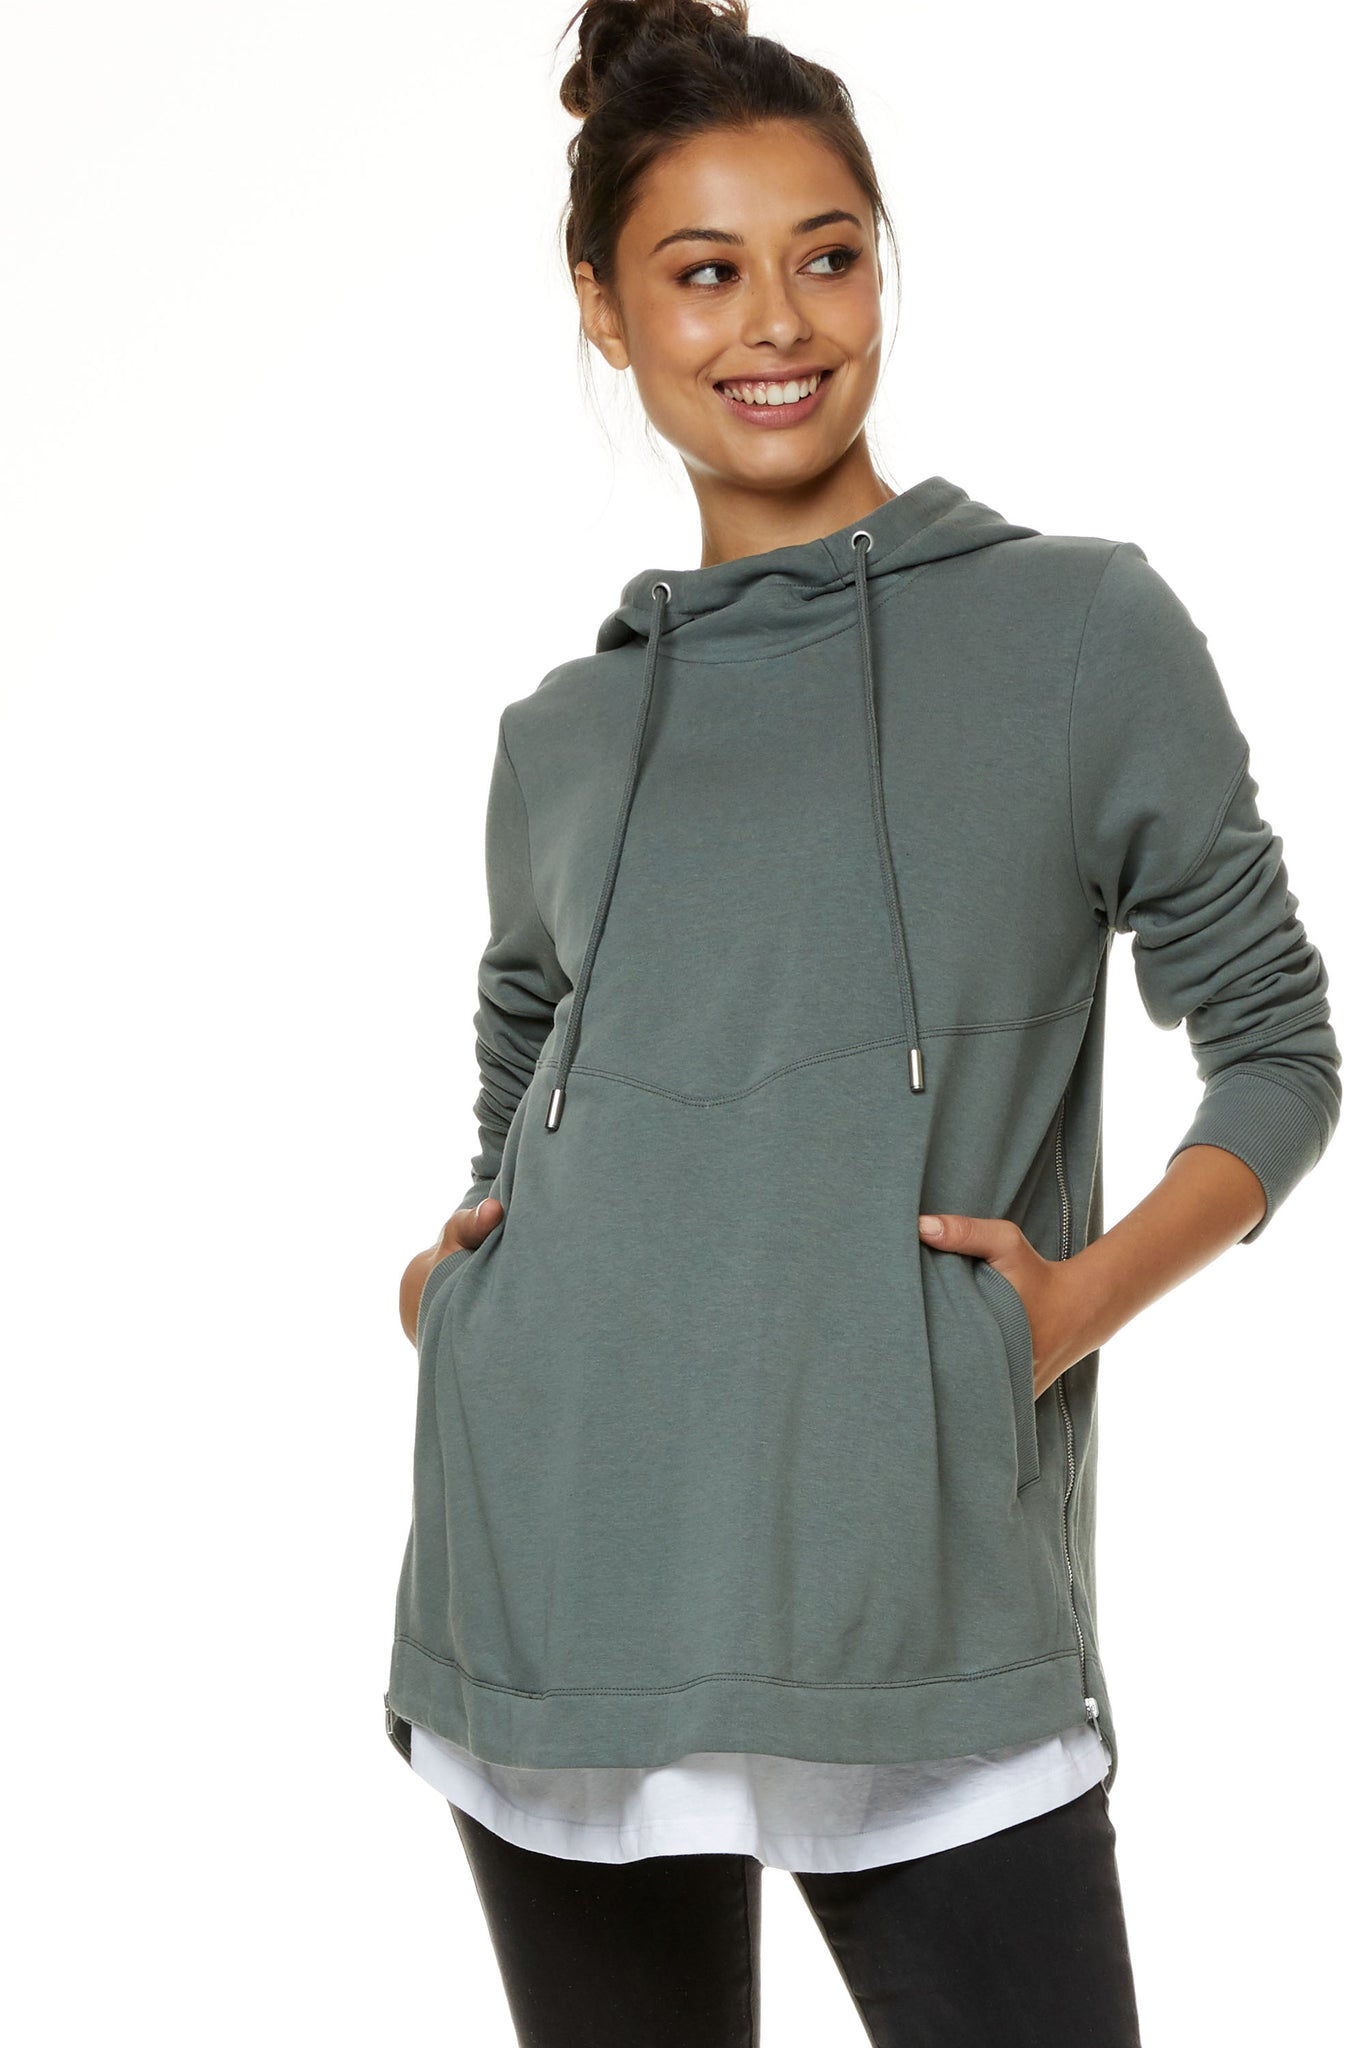 Maternity and Nursing Hoodie Khaki Image1